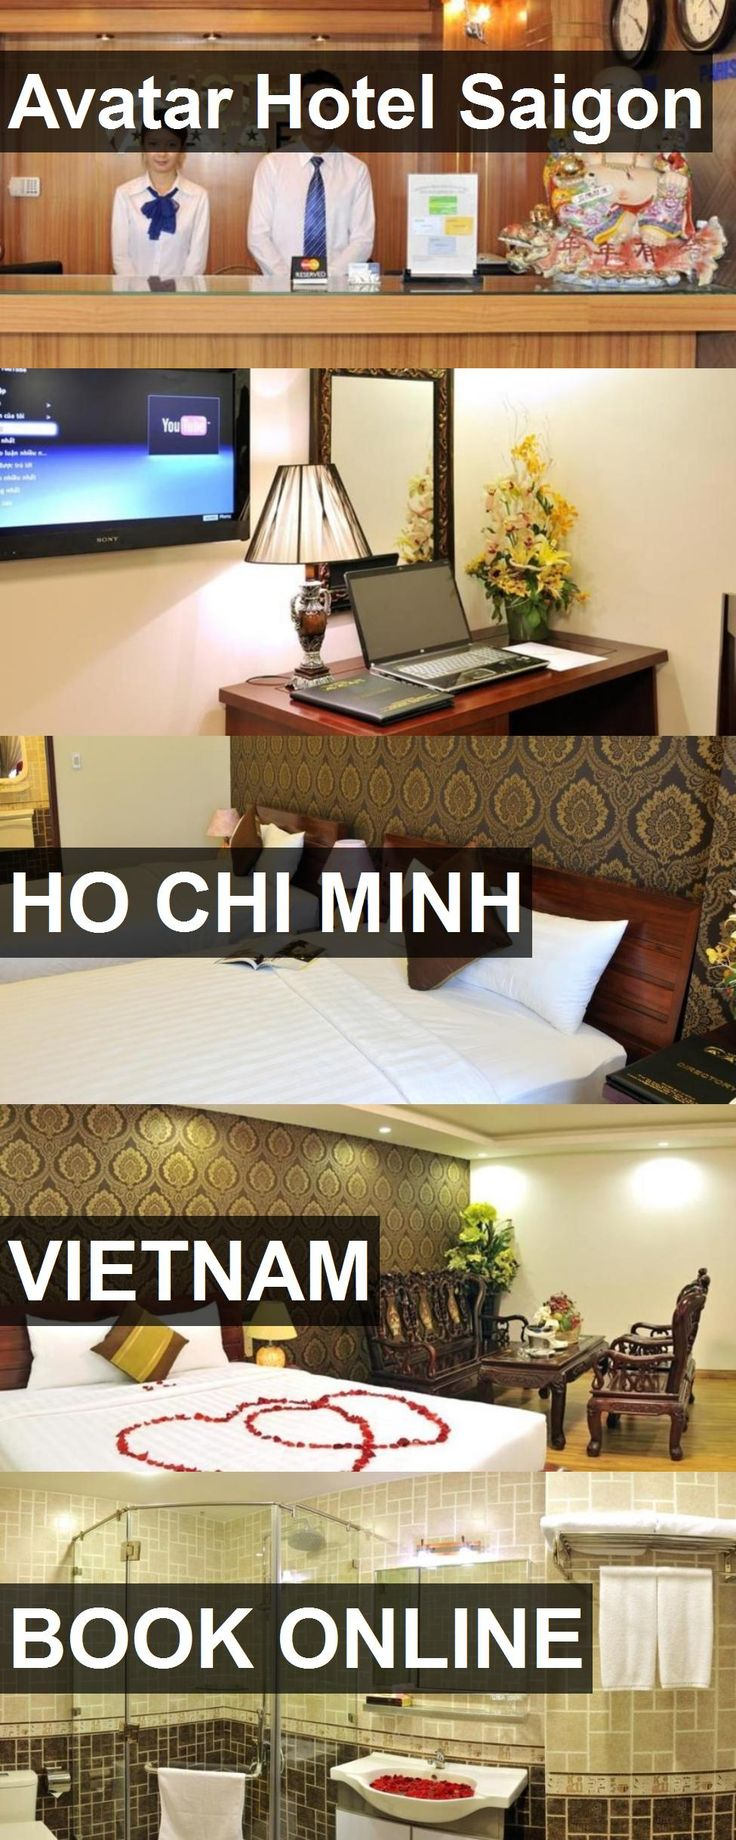 Hotel Avatar Hotel Saigon in Ho Chi Minh, Vietnam. For more information, photos, reviews and best prices please follow the link. #Vietnam #HoChiMinh #AvatarHotelSaigon #hotel #travel #vacation